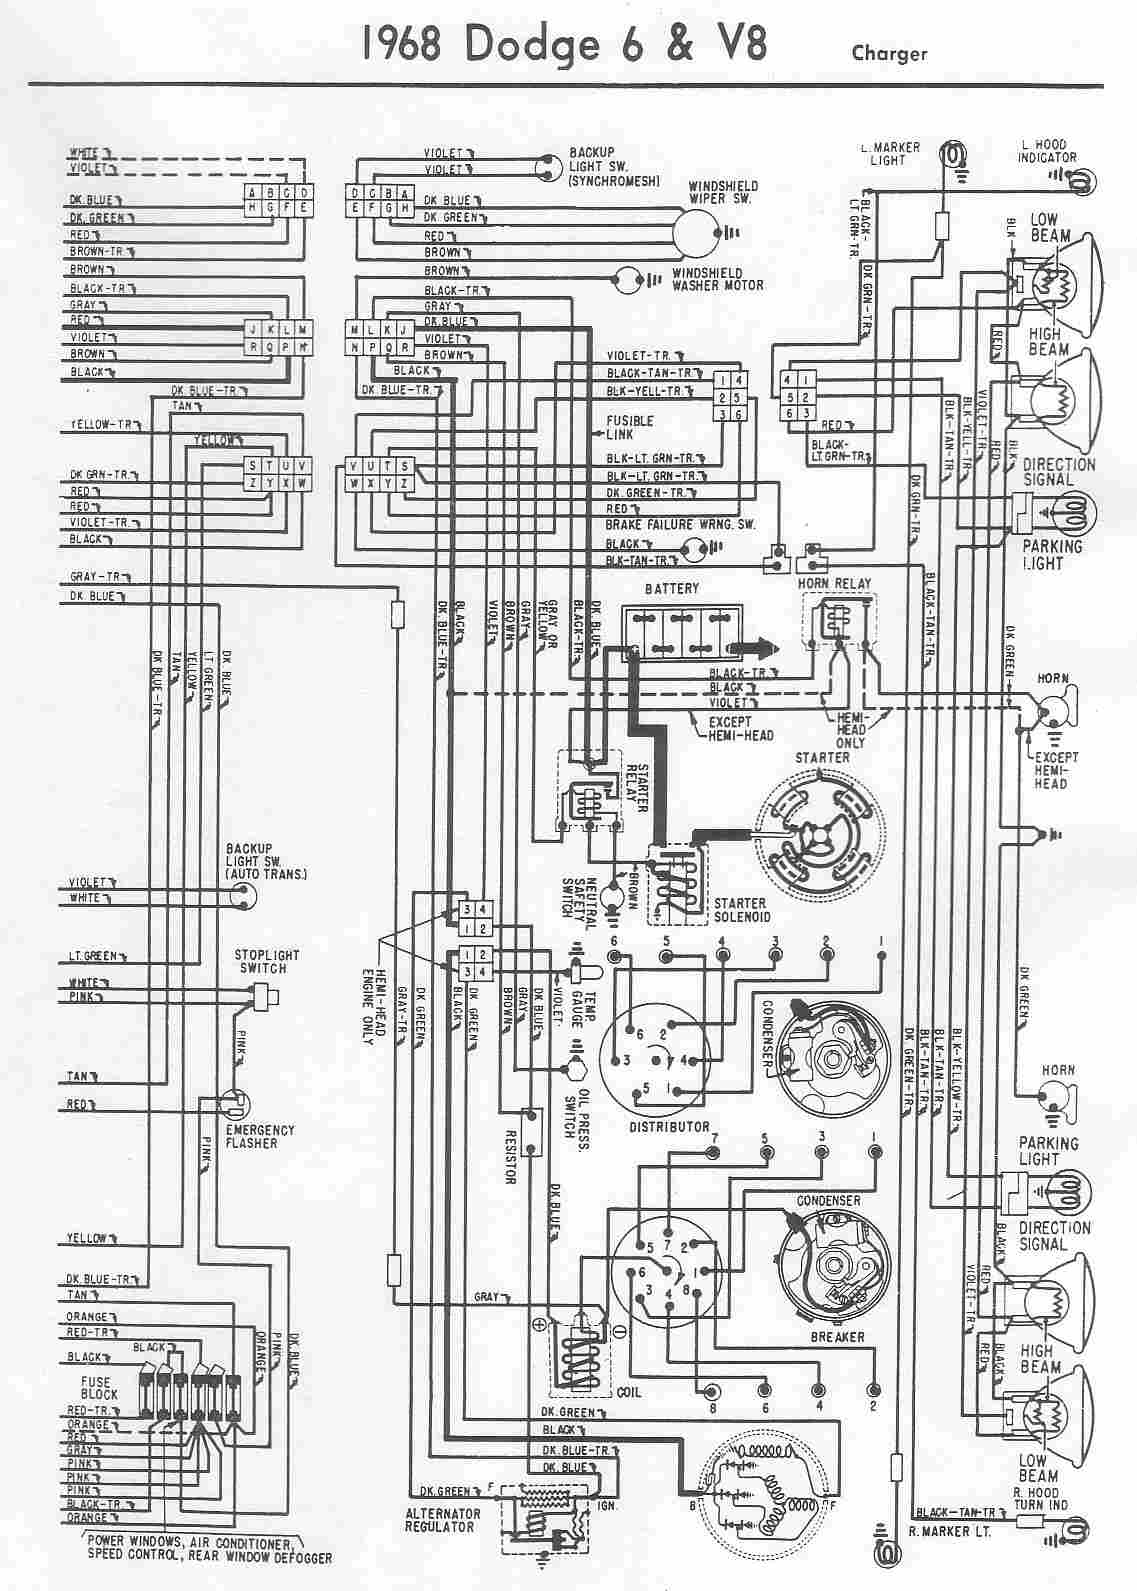 Dodge car manuals wiring diagrams pdf fault codes download asfbconference2016 Gallery